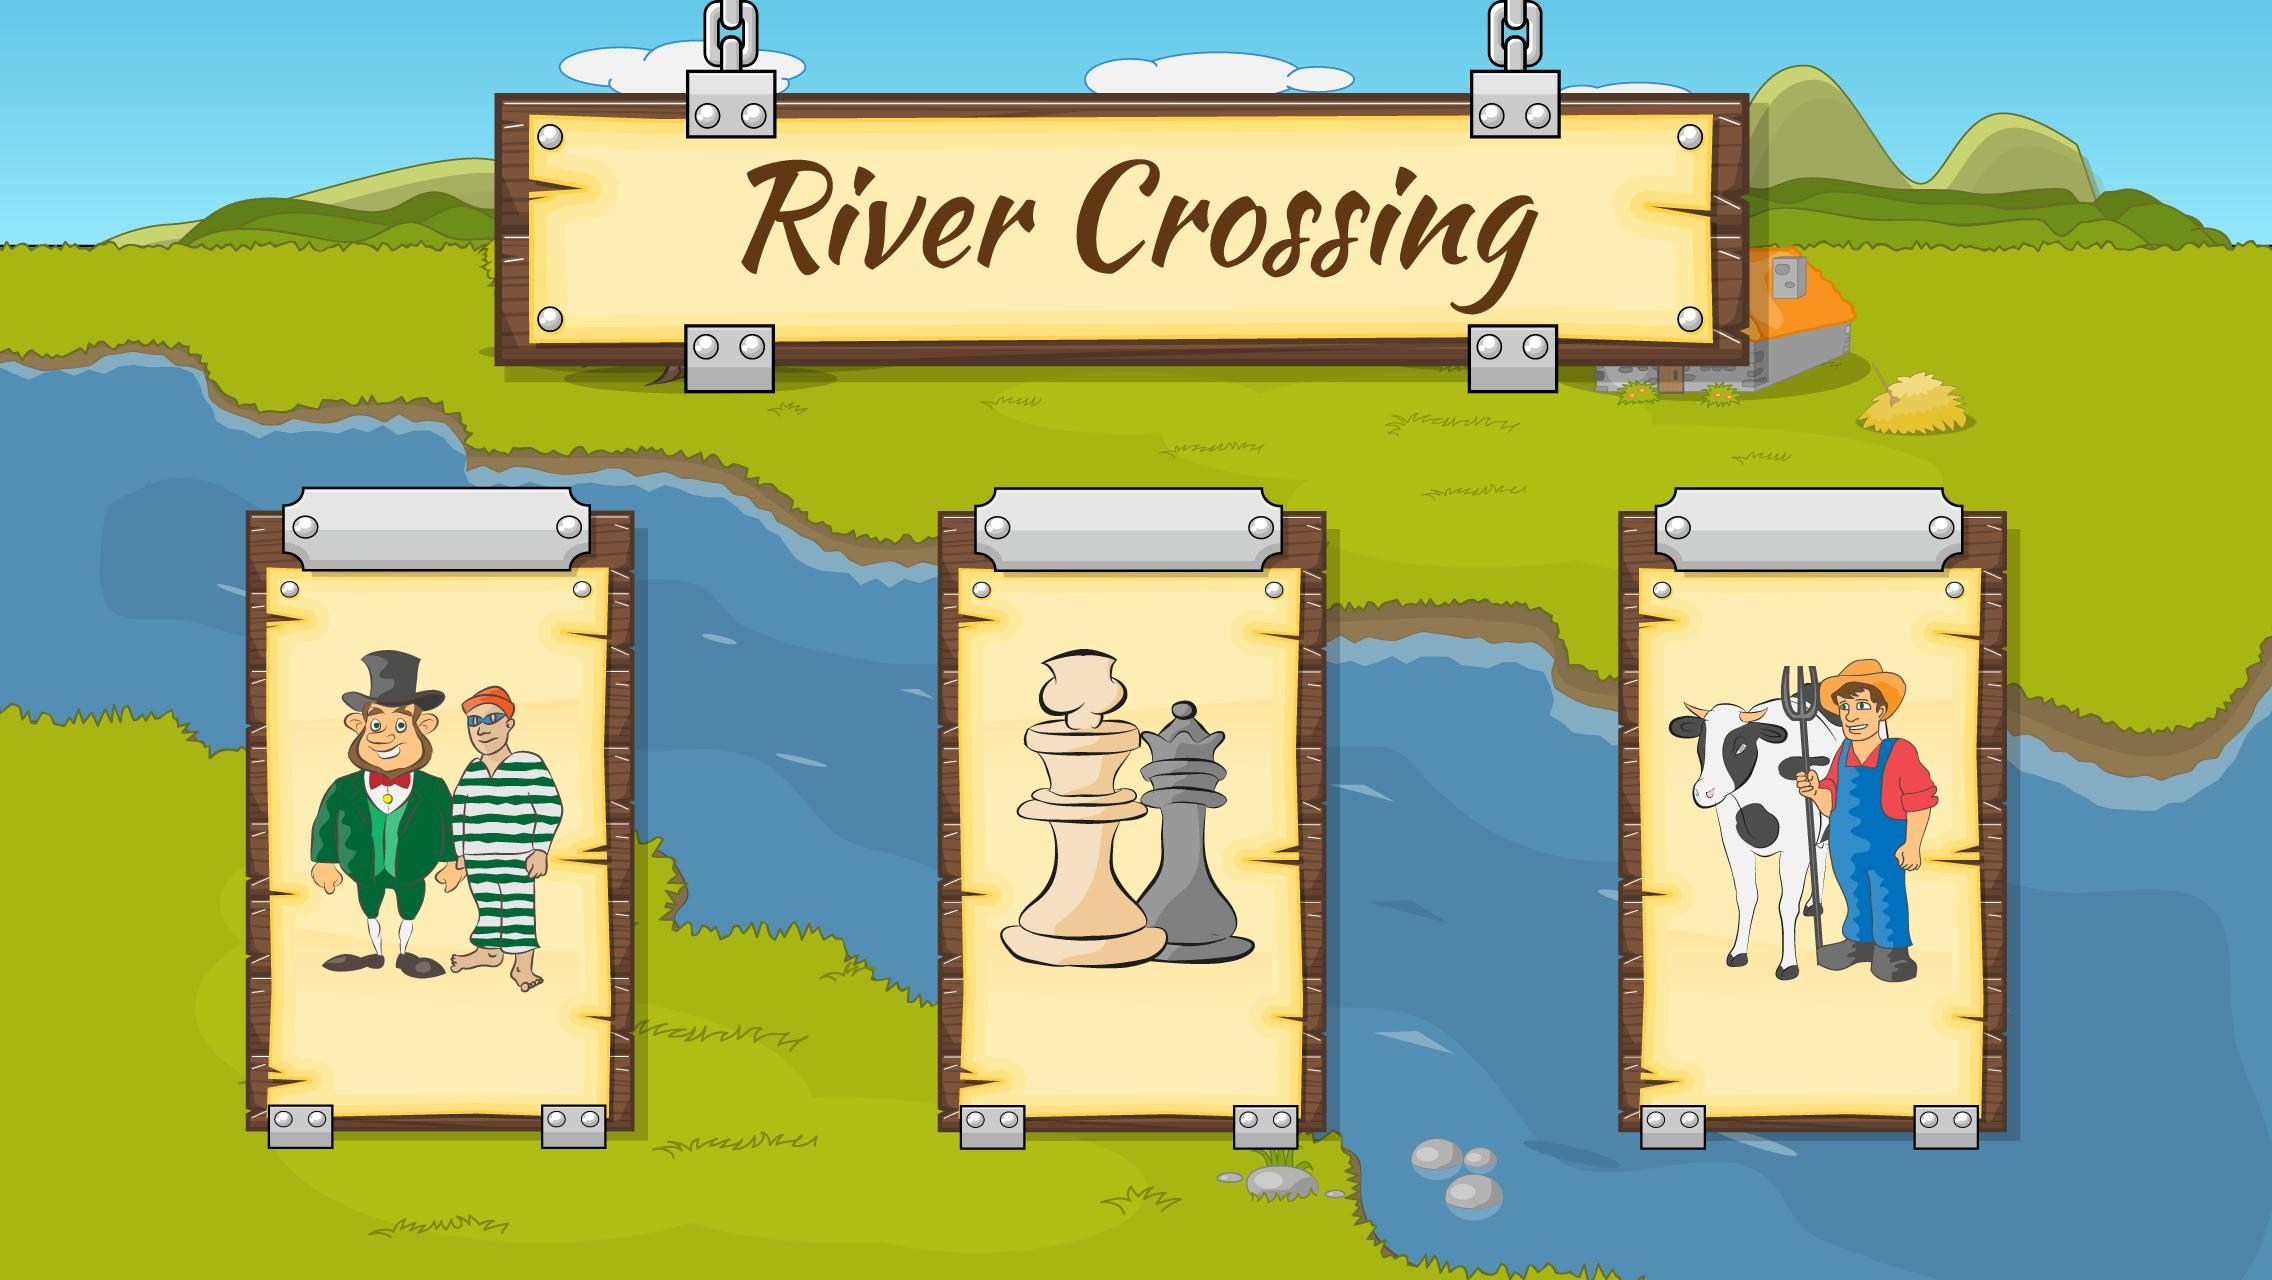 River Crossing IQ Logic Puzzles & Fun Brain Games 1.2.2 Screenshot 5